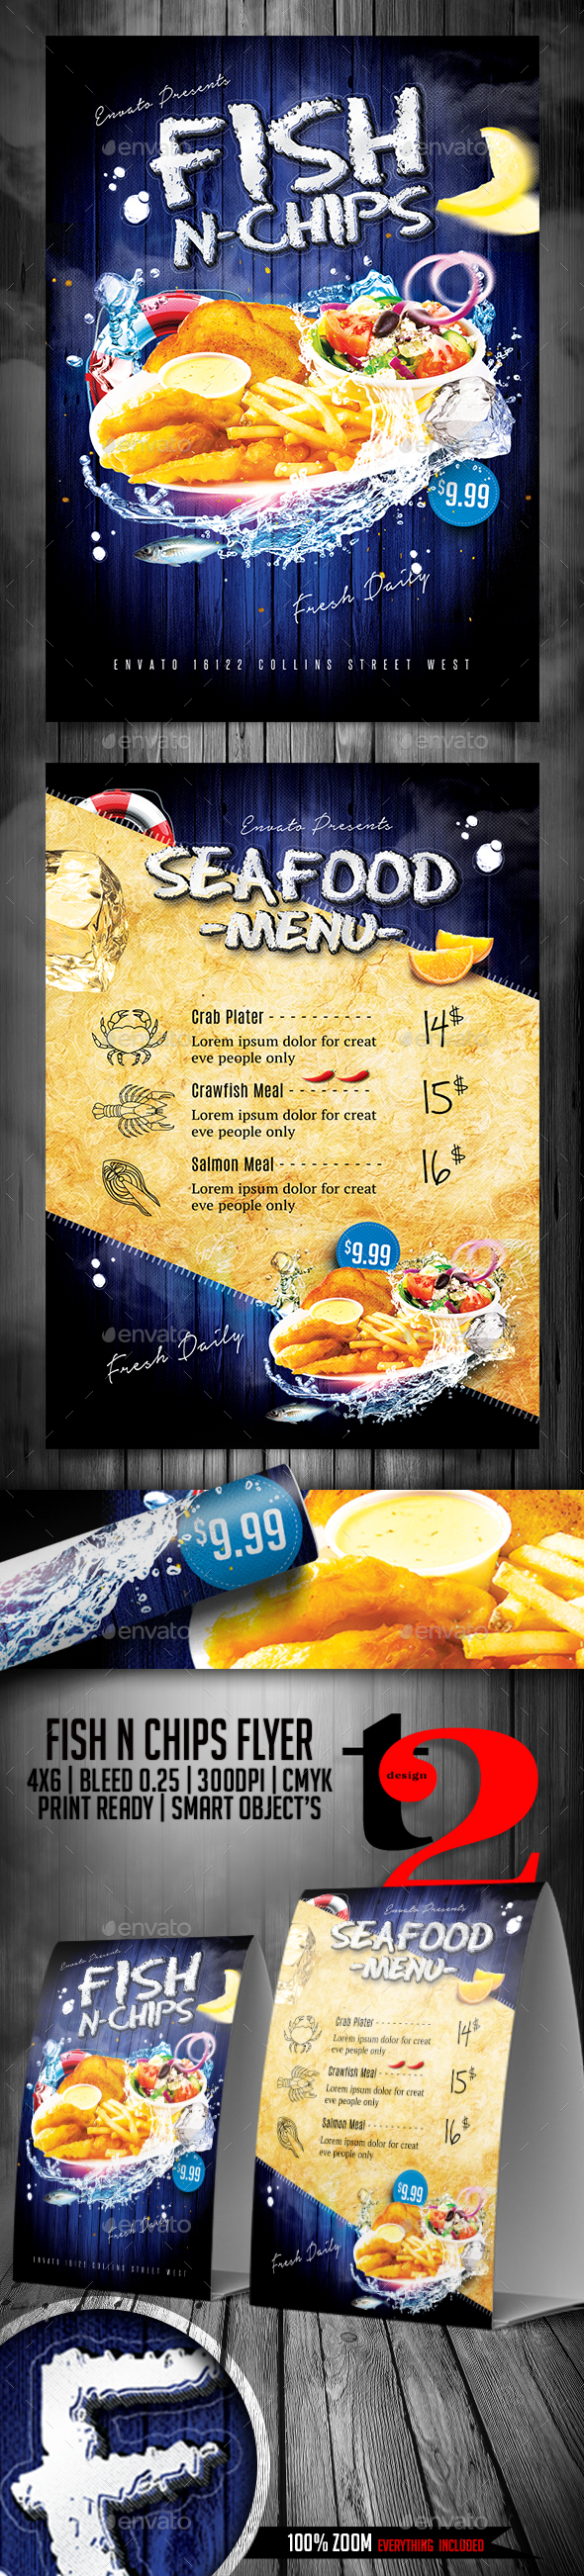 Fish N Chips Flyer Template